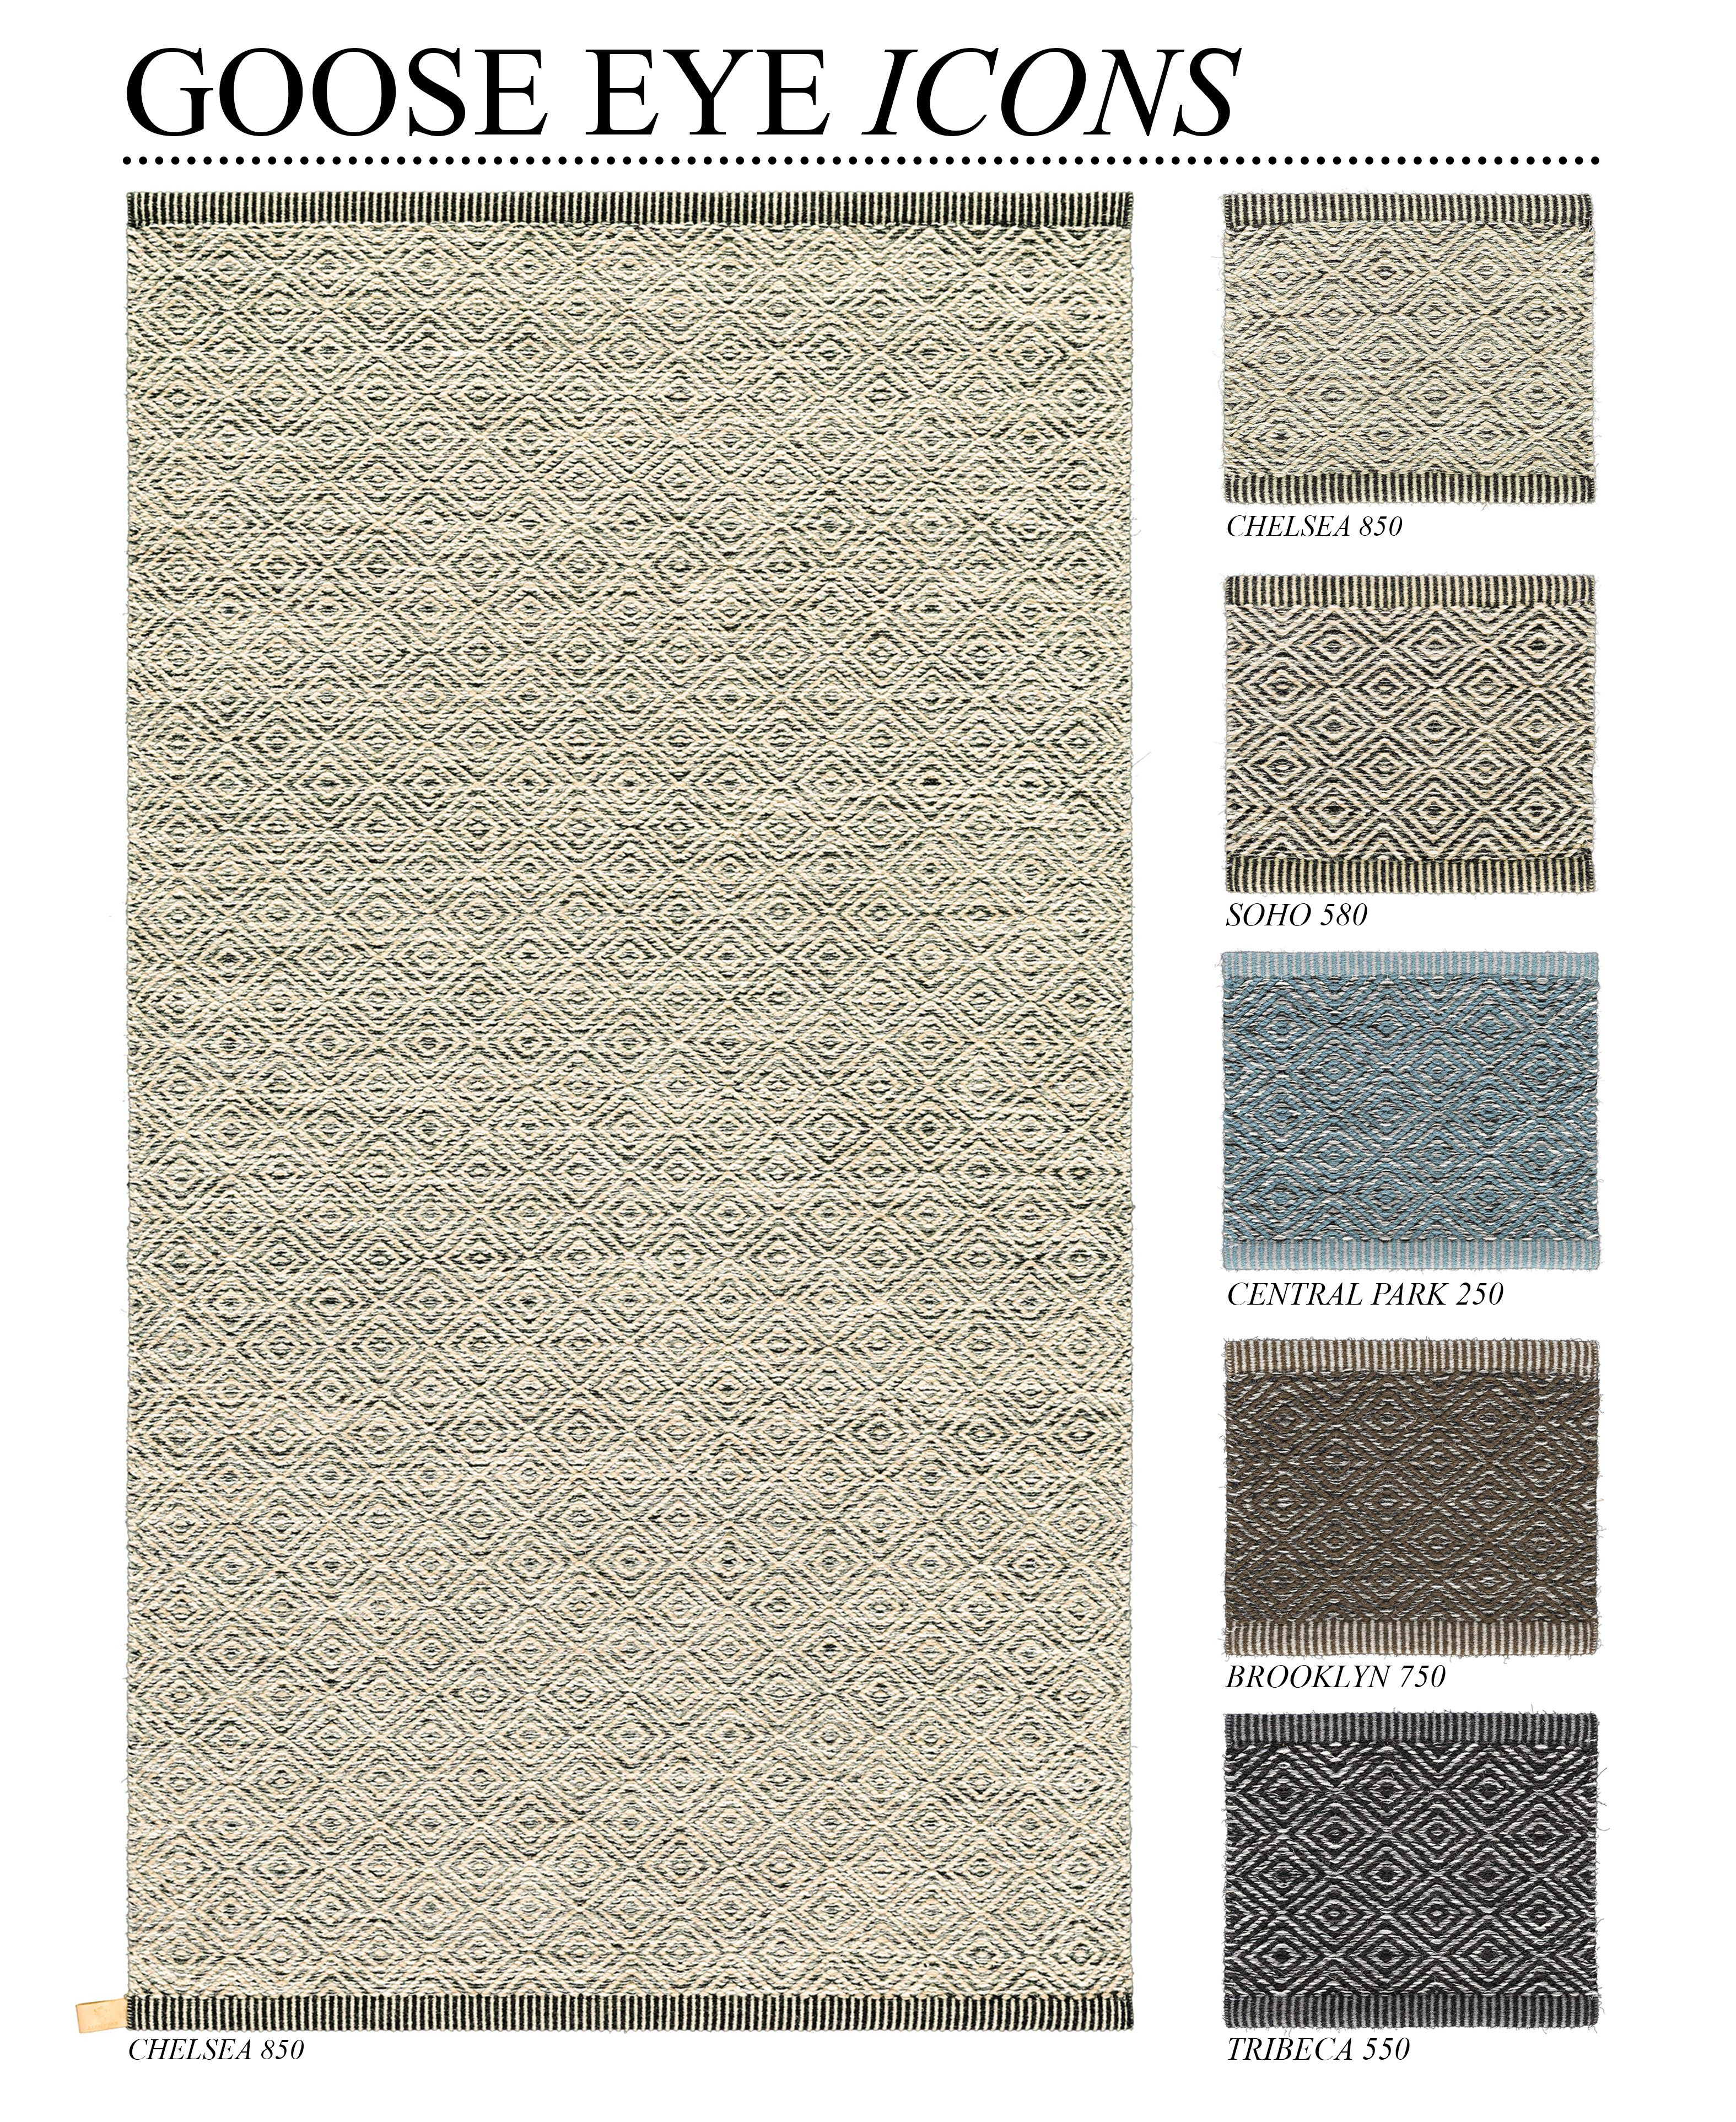 Kasthall Goose Eye Icon the perfect rug for every room! | hem inredning